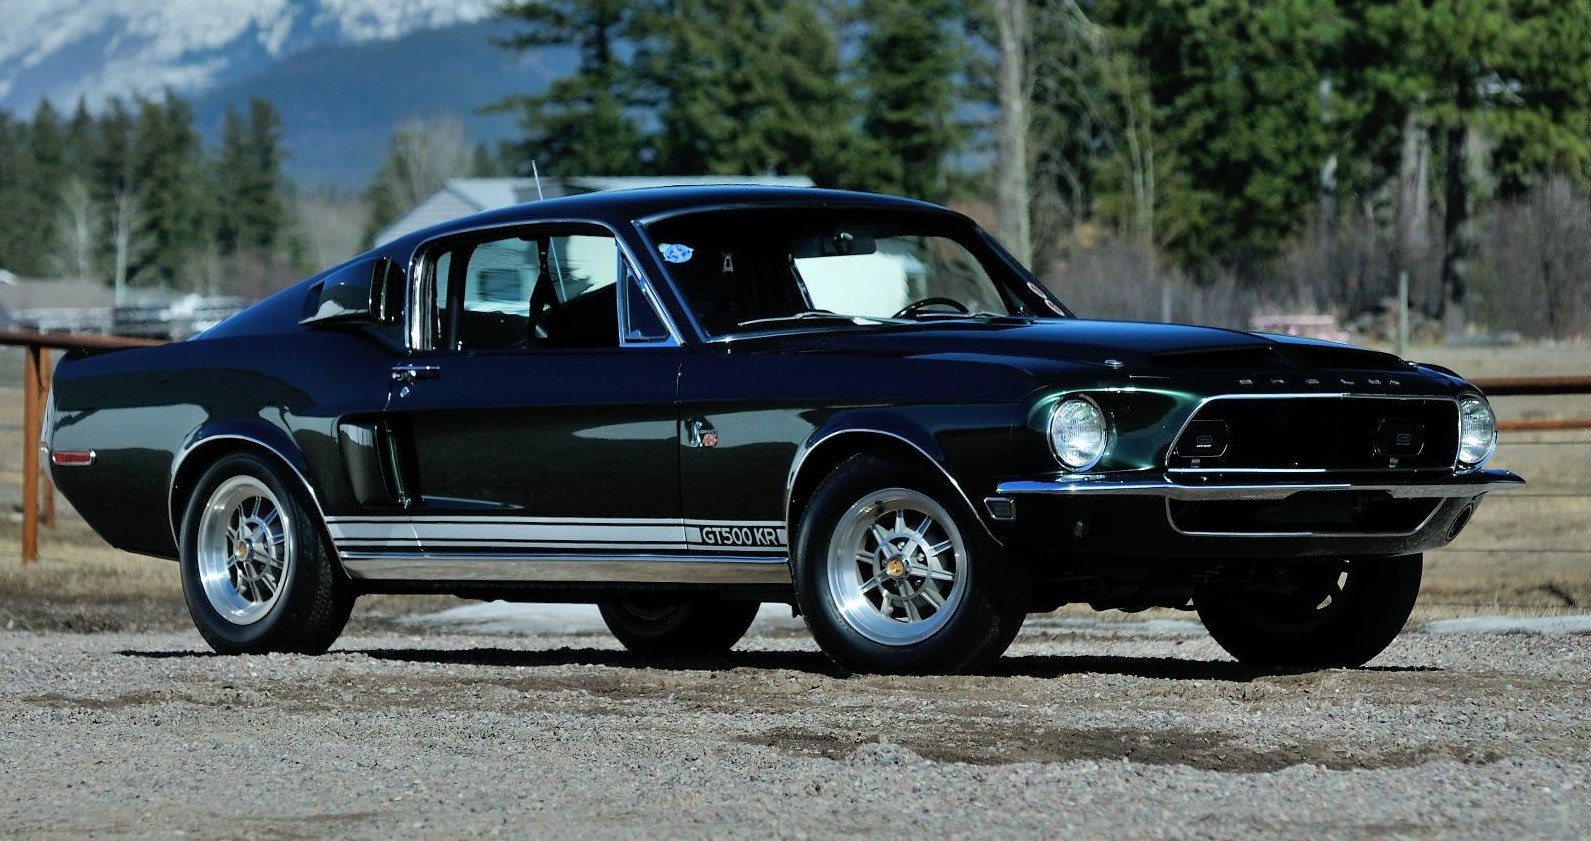 MECUM COLLECTOR CAR AUCTION IN SEATTLE JUNE 5-6 - myAutoWorld.com